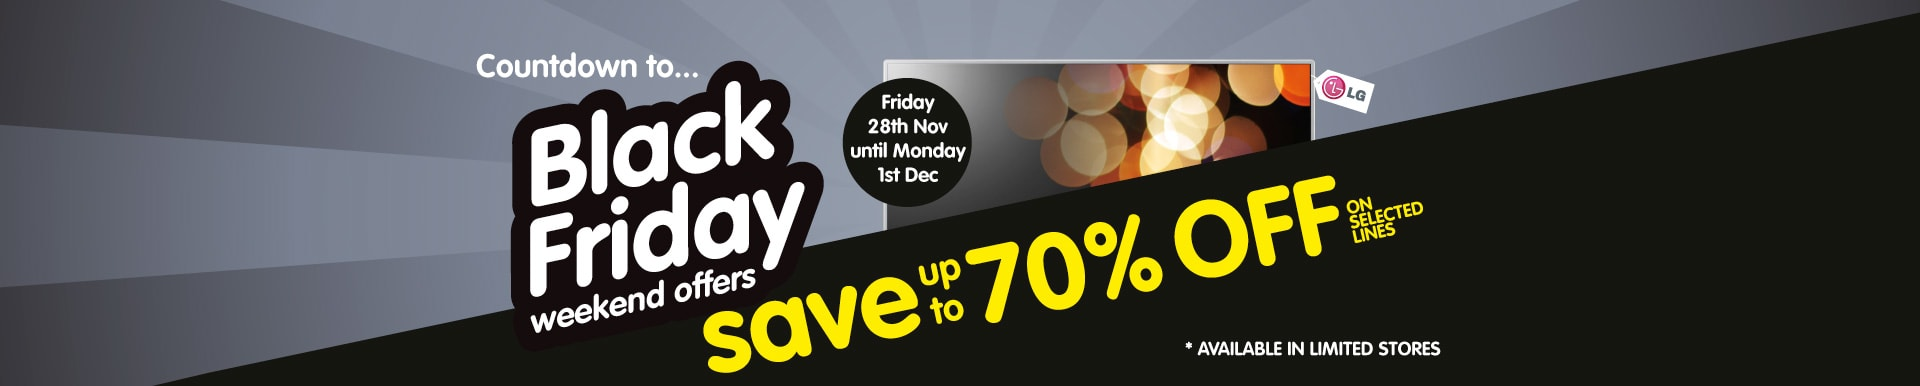 Countdown to Black Friday Weekend Offers - Save up to 70% off on selected lines at B&M Stores.